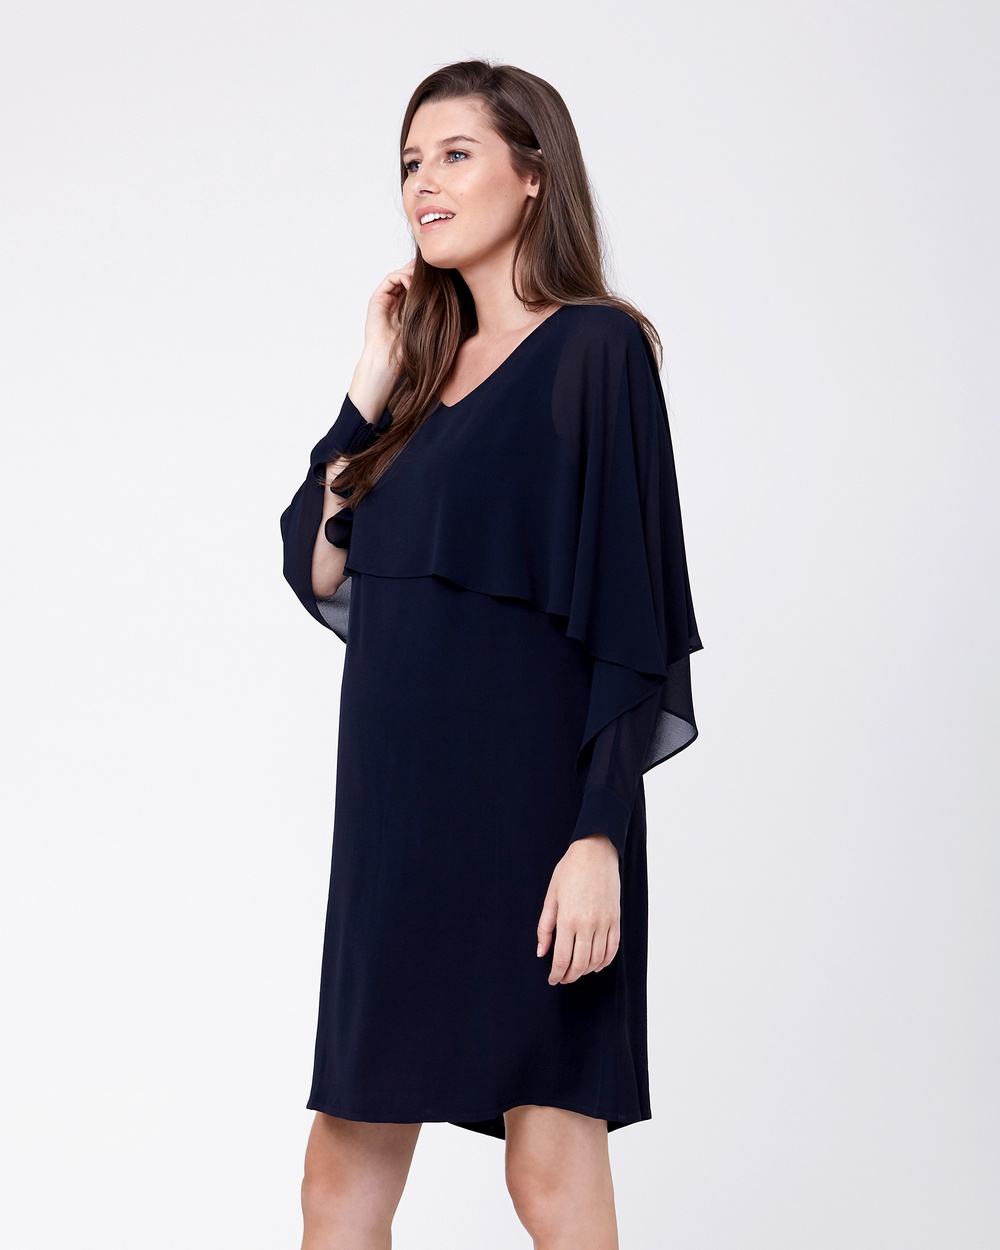 Ripe Maternity Double Layer Nursing Dress Dresses Navy Double Layer Nursing Dress